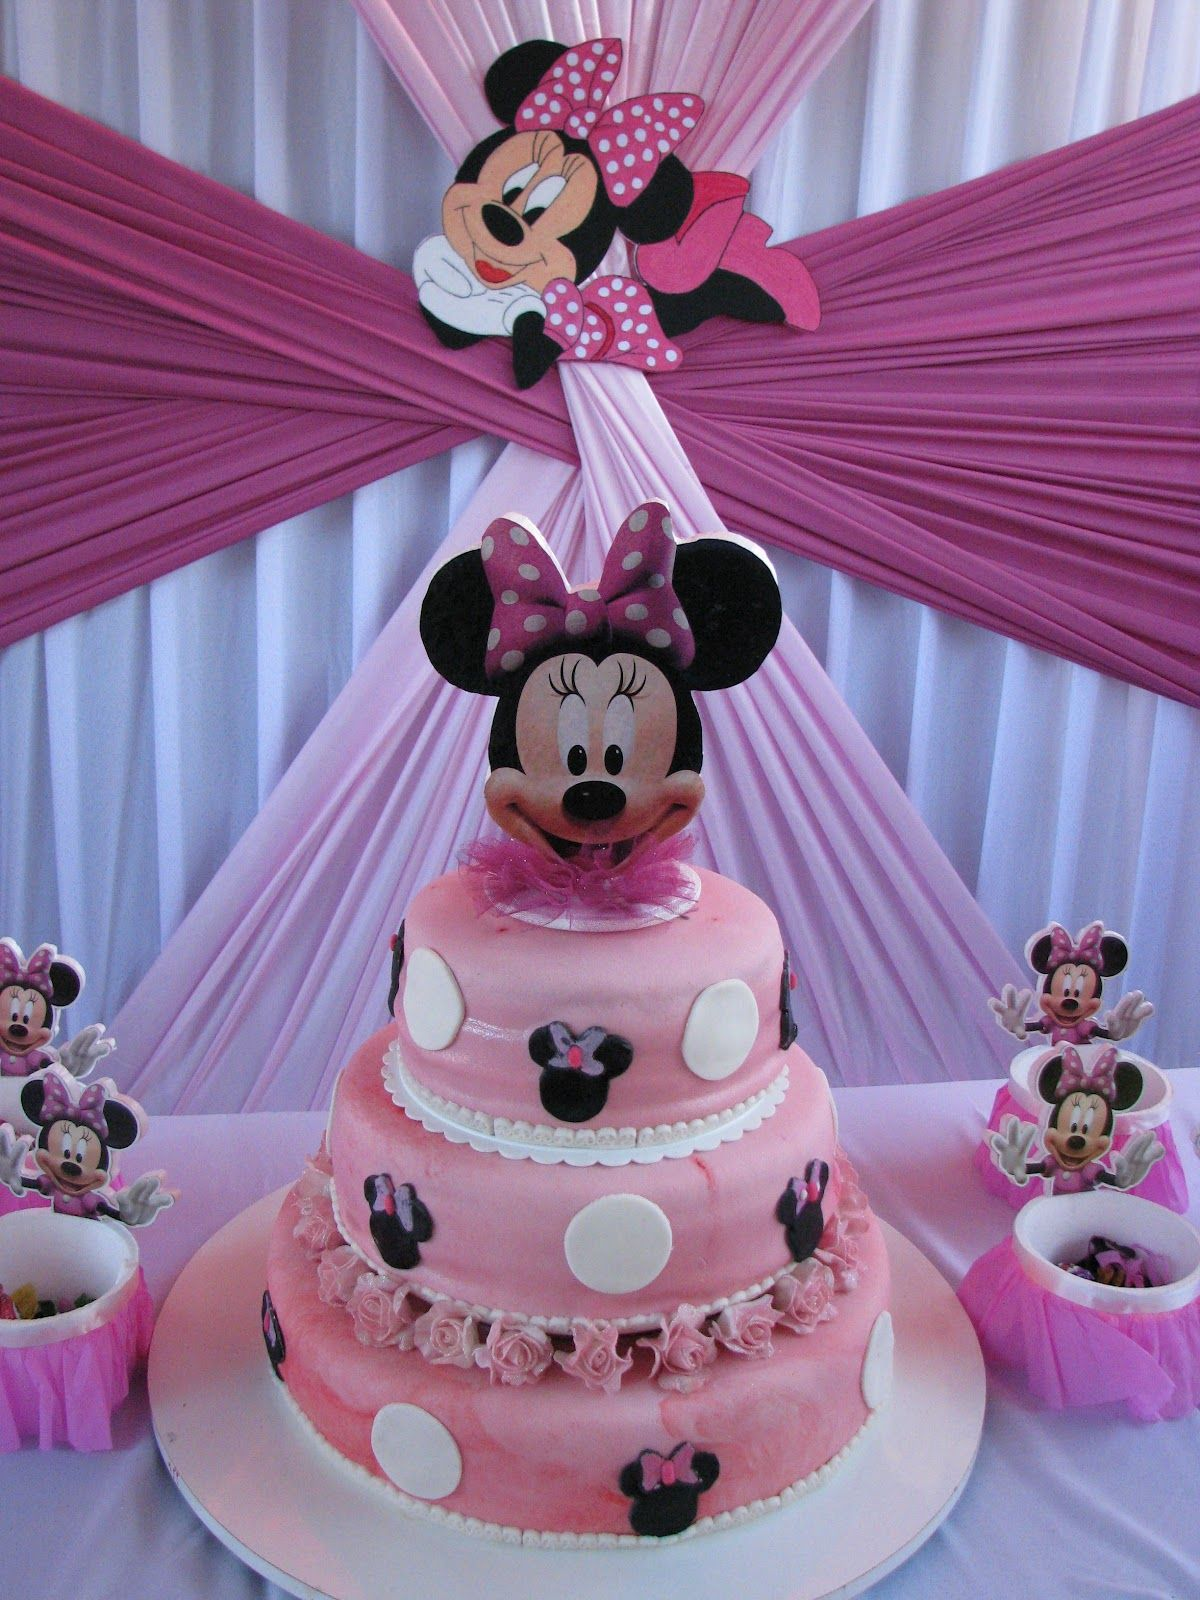 Decoracion de cumplea os de minnie y mickey mouse img 4448 - Decoracion cumpleanos bebe ...